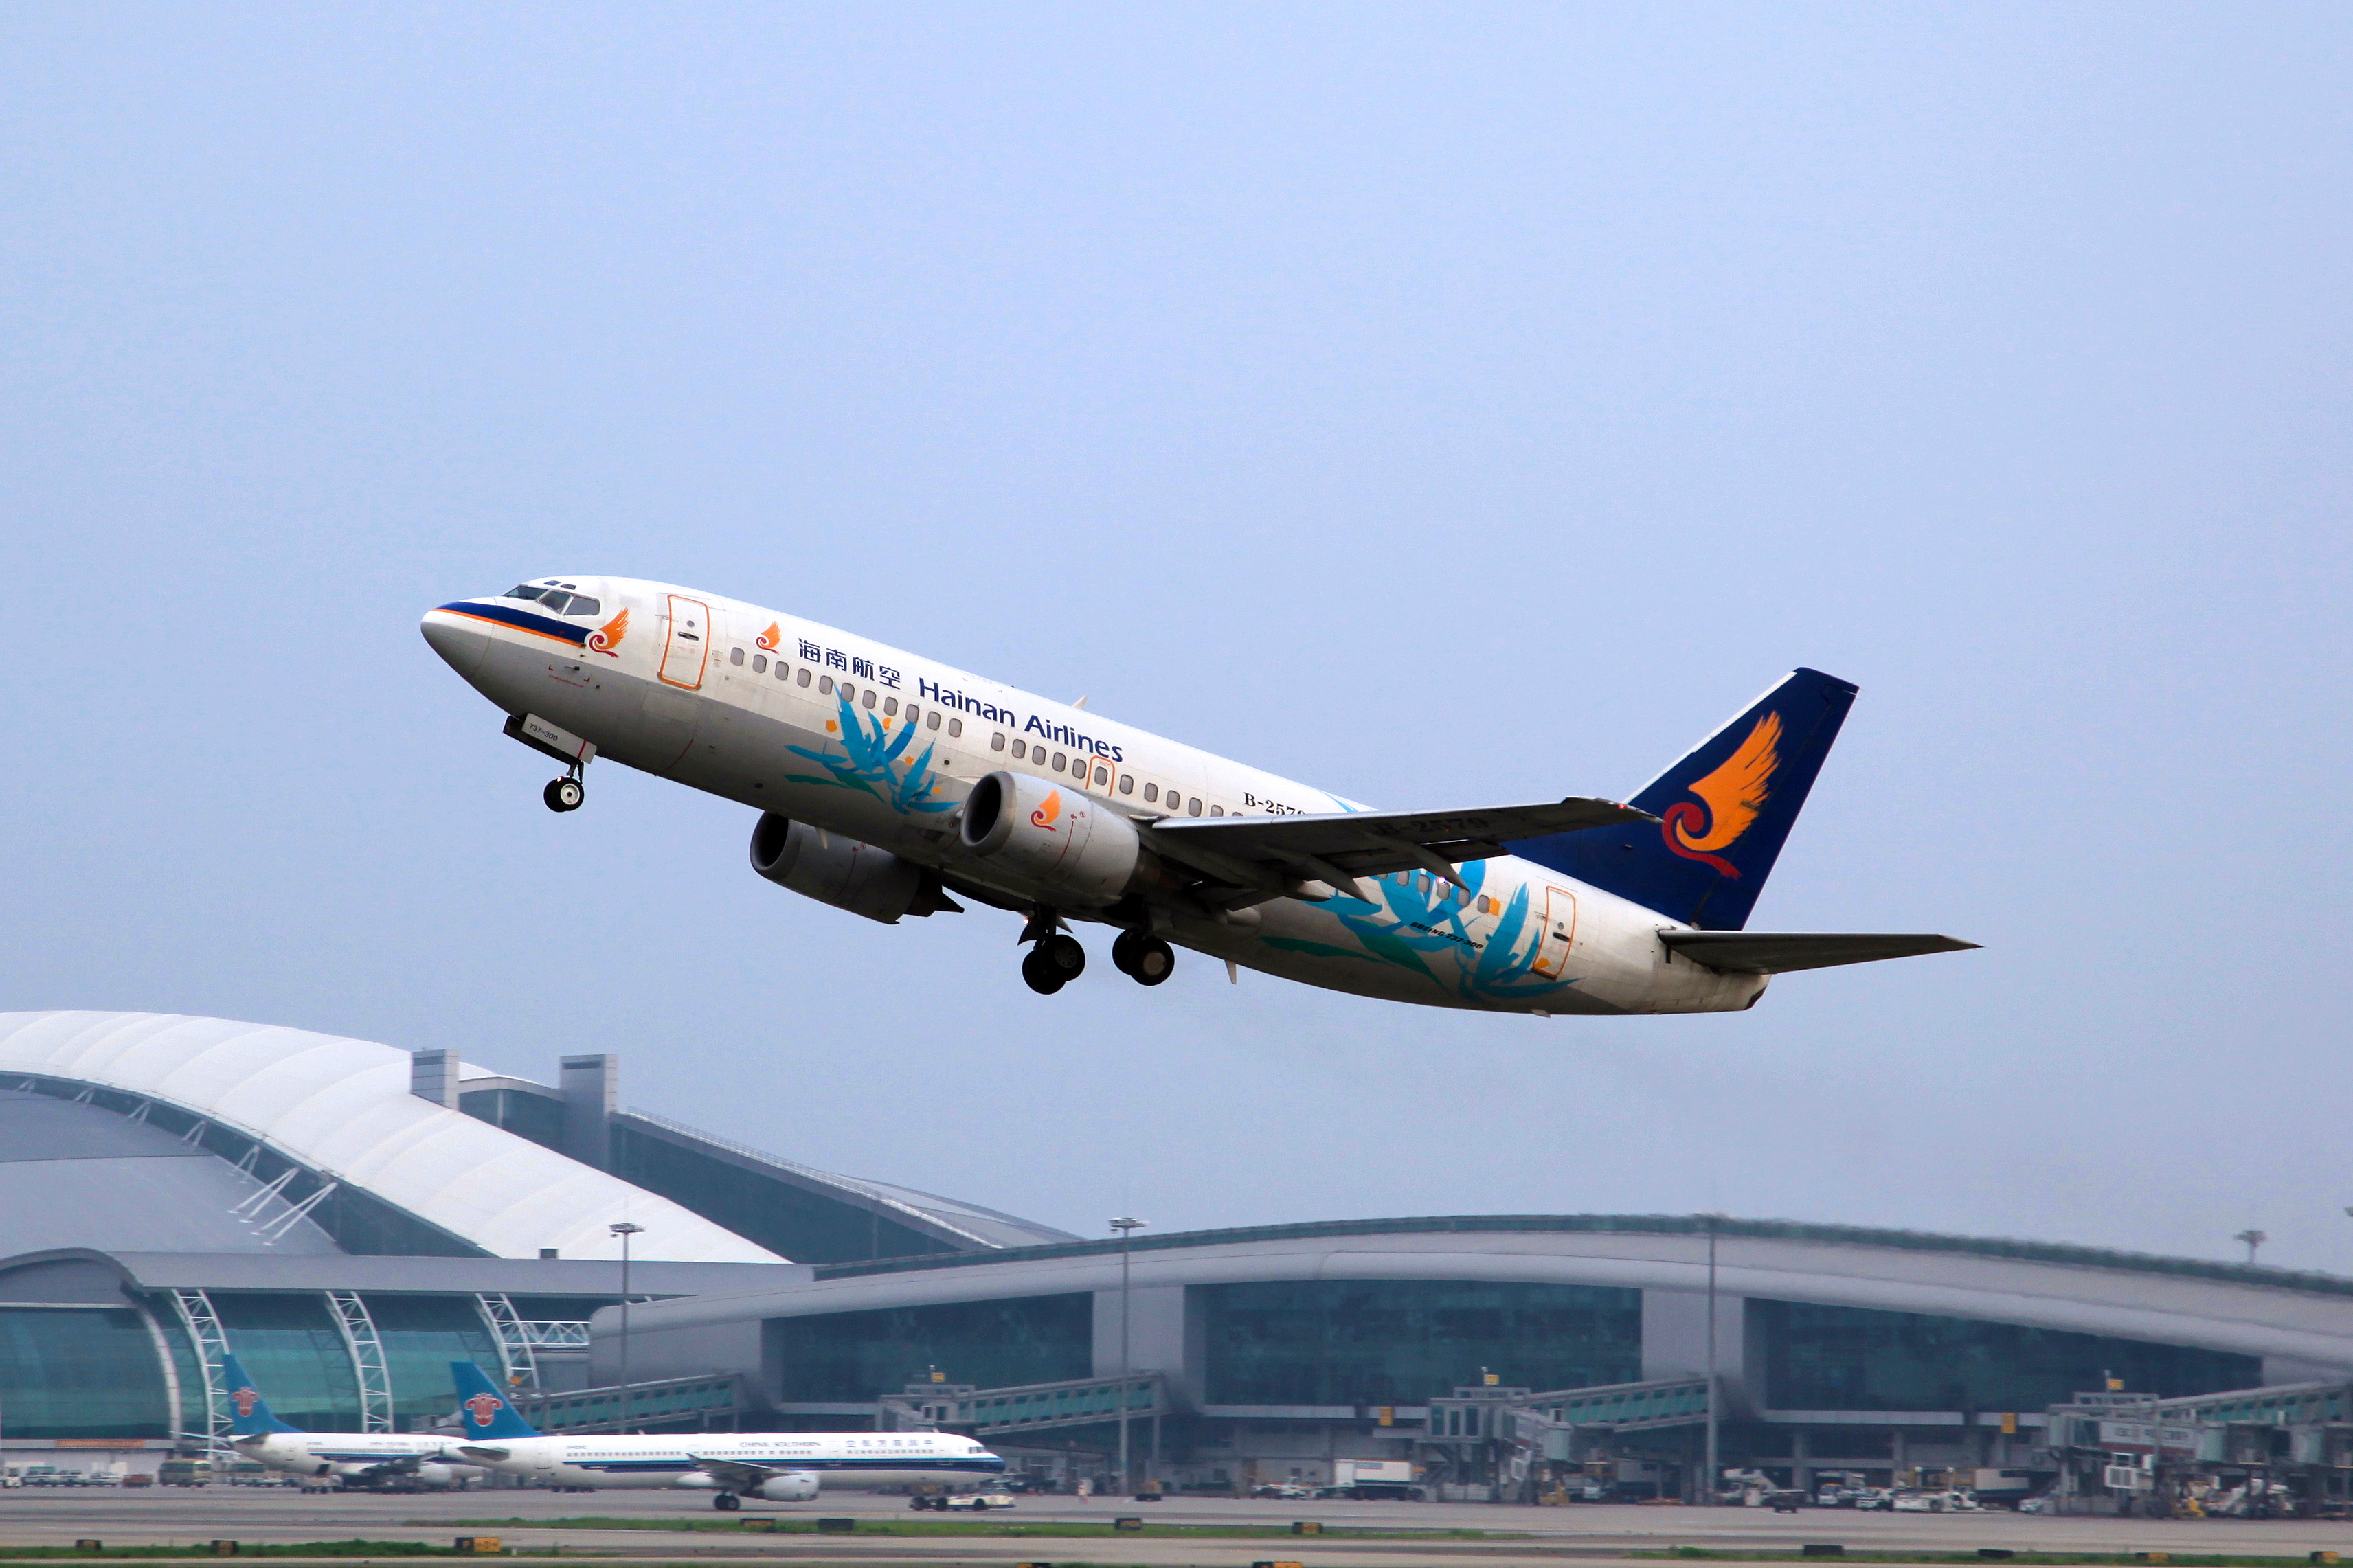 File:B-2579 - Hainan Airlines - Boeing 737-33A - Blue Flowers